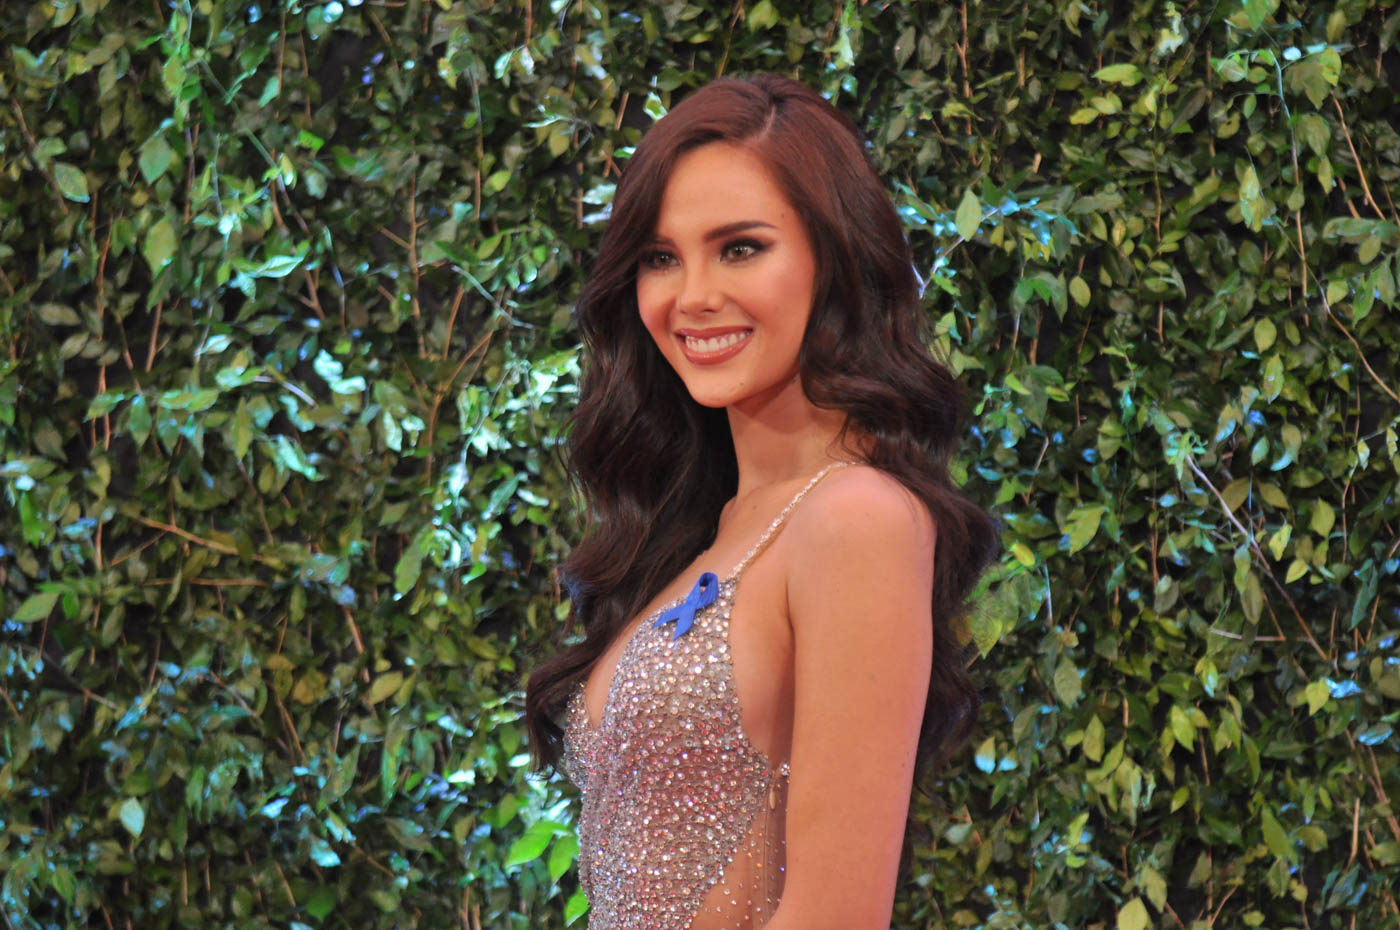 FAVE QUEEN. Catriona Gray during the ABS-CBN Ball last September 29. Photo by Jay Ganzon/Rappler